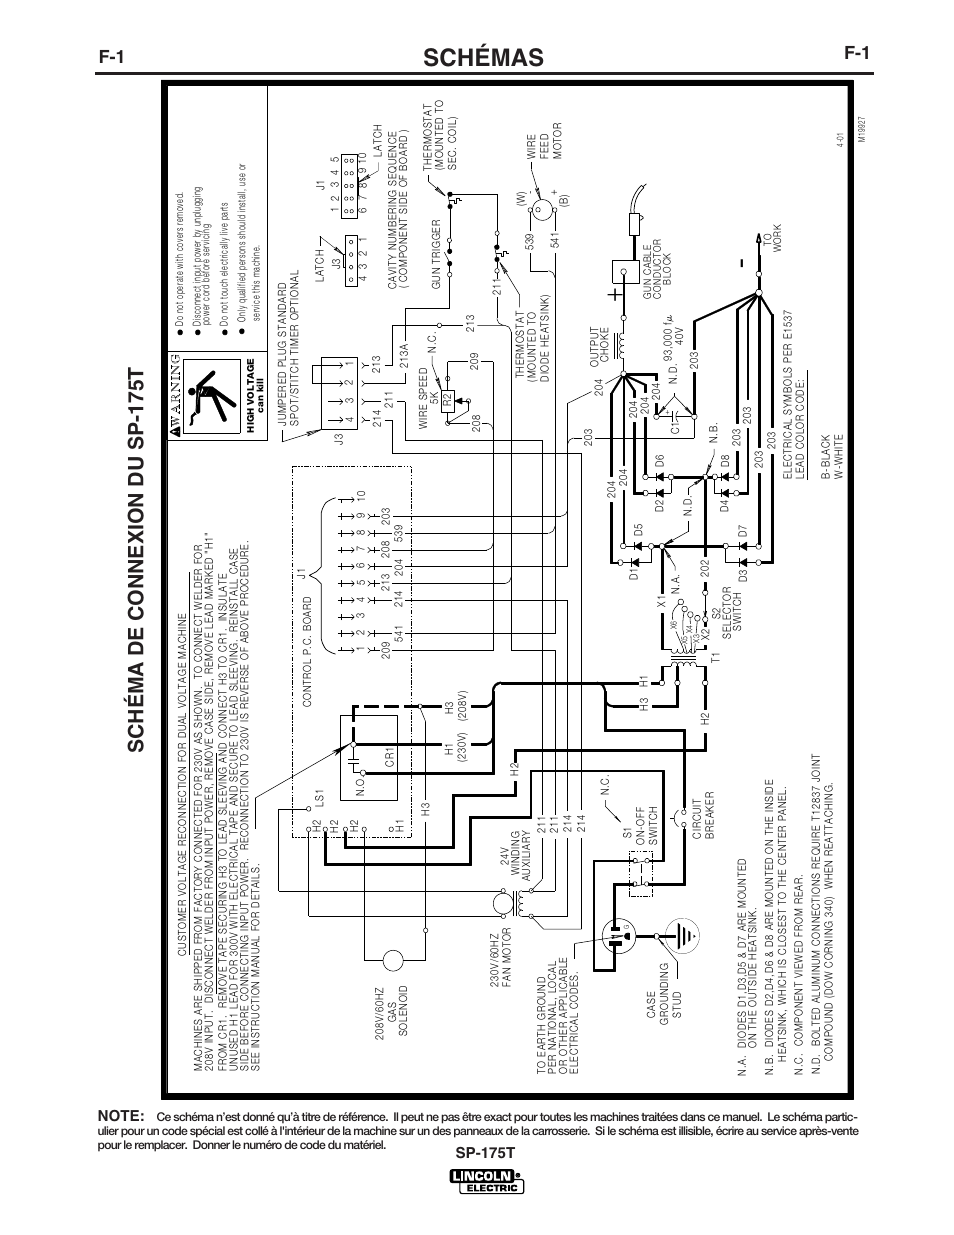 Lincoln P203 Wiring Diagram Libraries 203 Librarysch Mas Sch Ma De Connexion